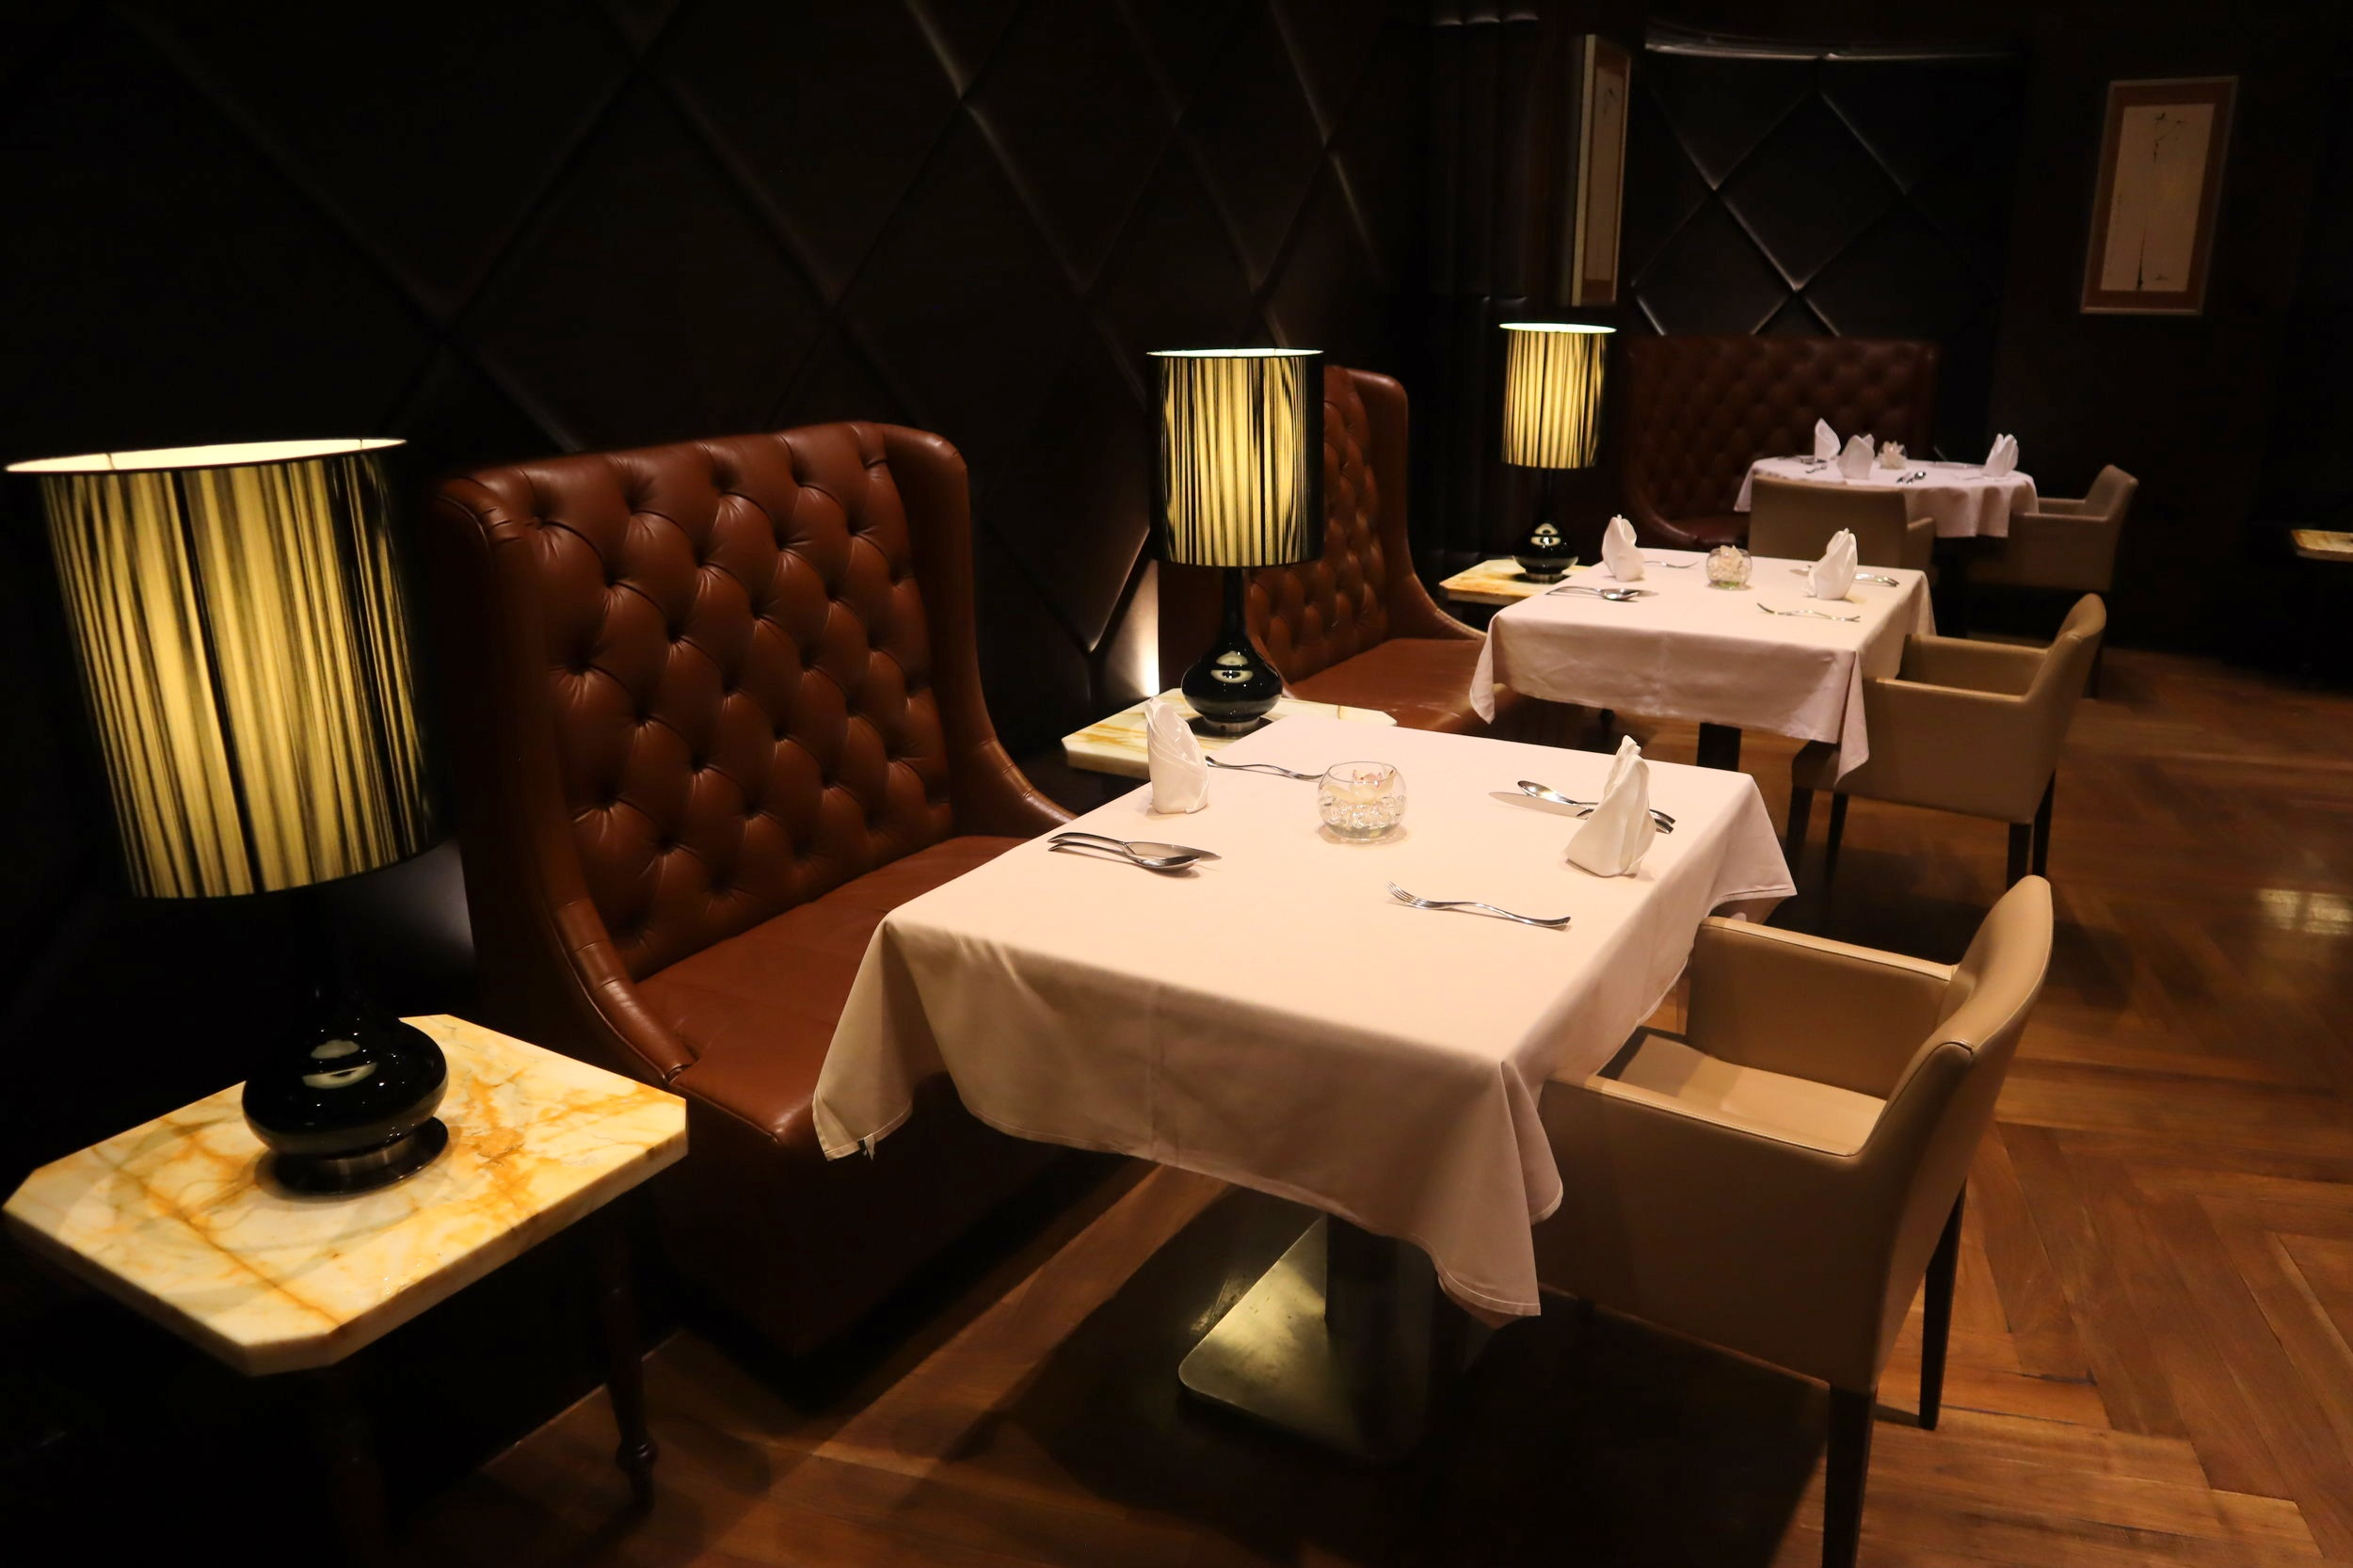 The Private Room by Singapore Airlines – Dining room seating